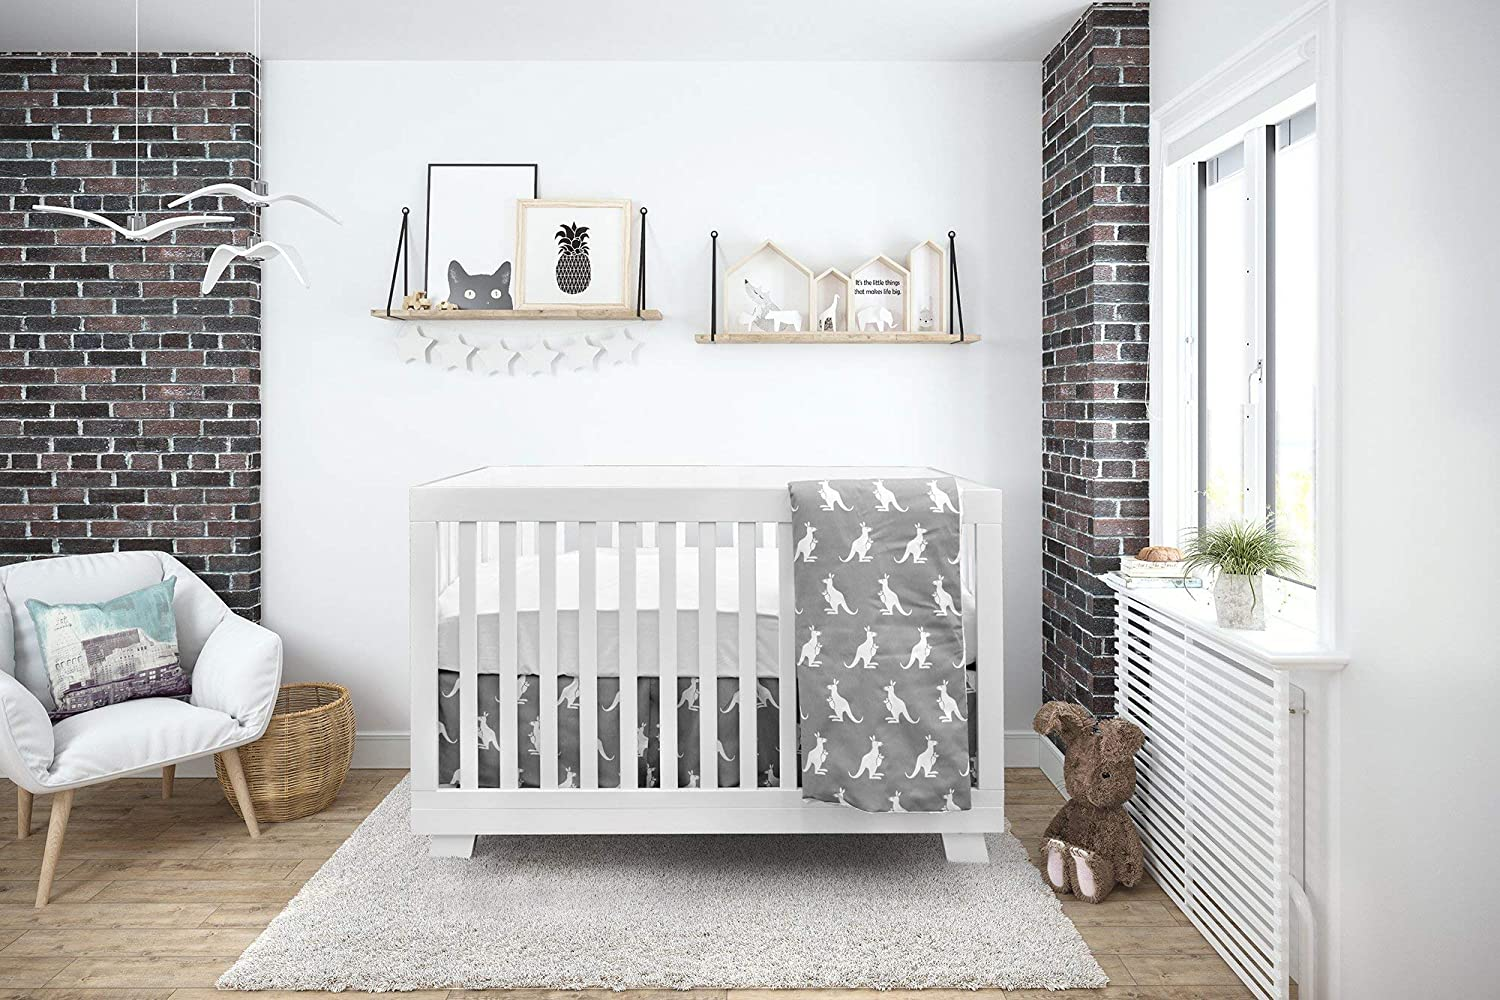 Boobeyeh & Design Baby Crib Bedding Set, 4 Pieces, Boys And Girls, Including: Fitted Sheet+ Crib Comforter+ Comforter Cover+ Skirt, White And Grey Kangaroo Design